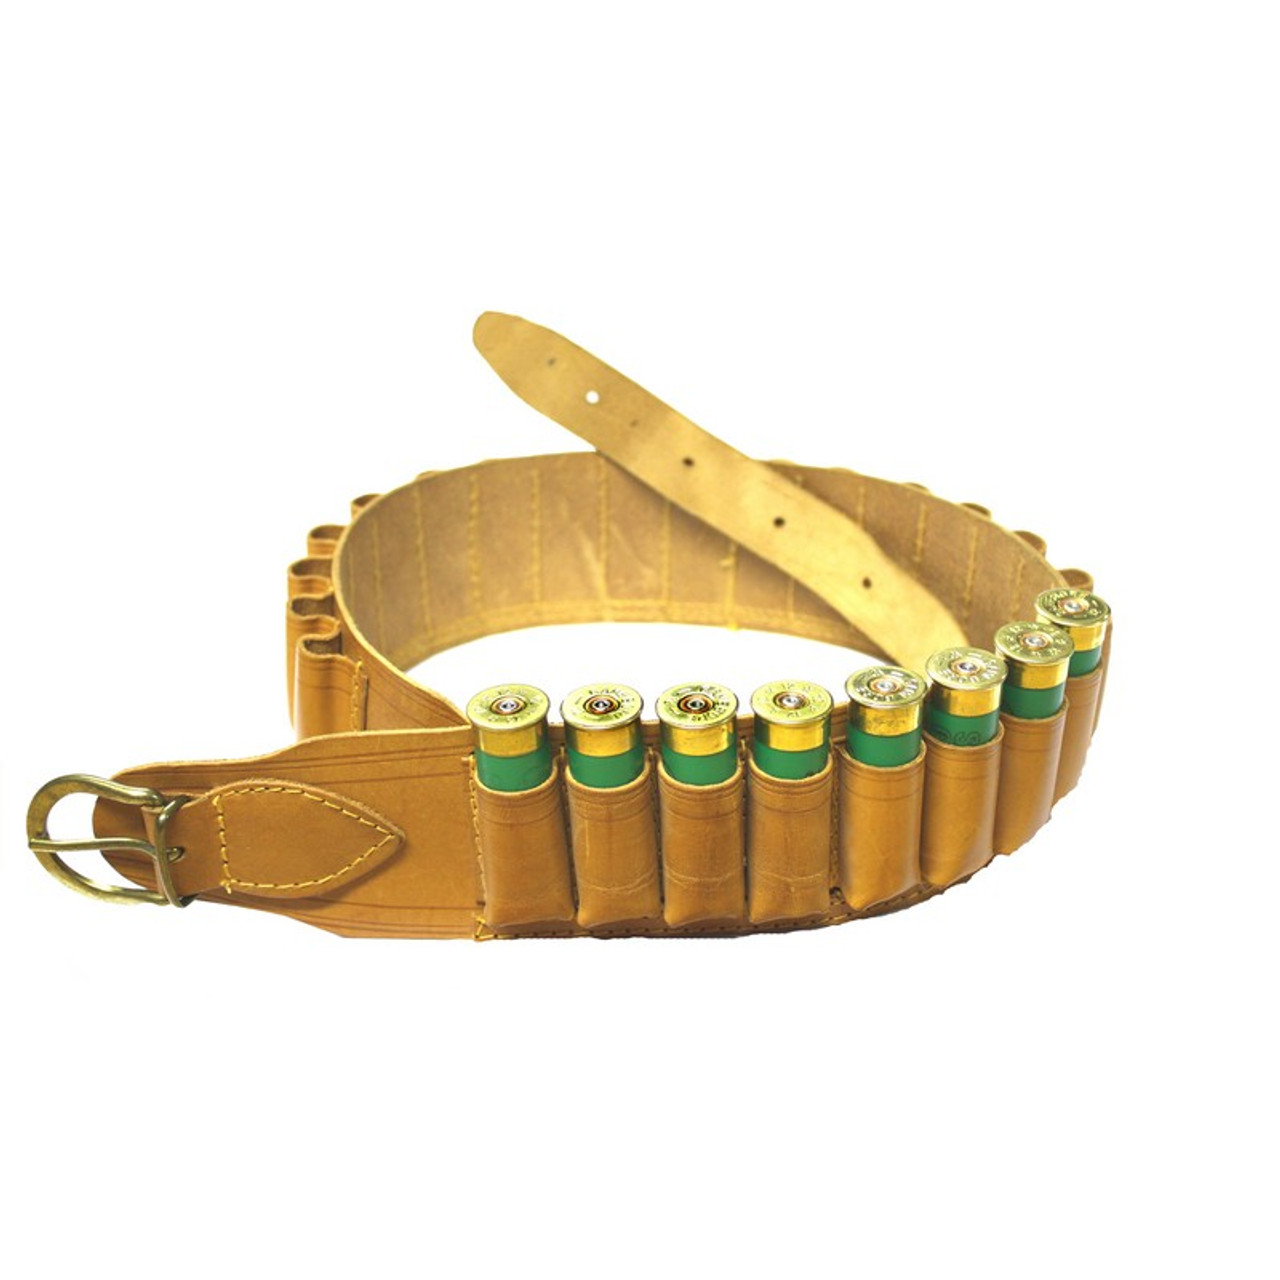 Natural Leather Cartridge Belt 20G